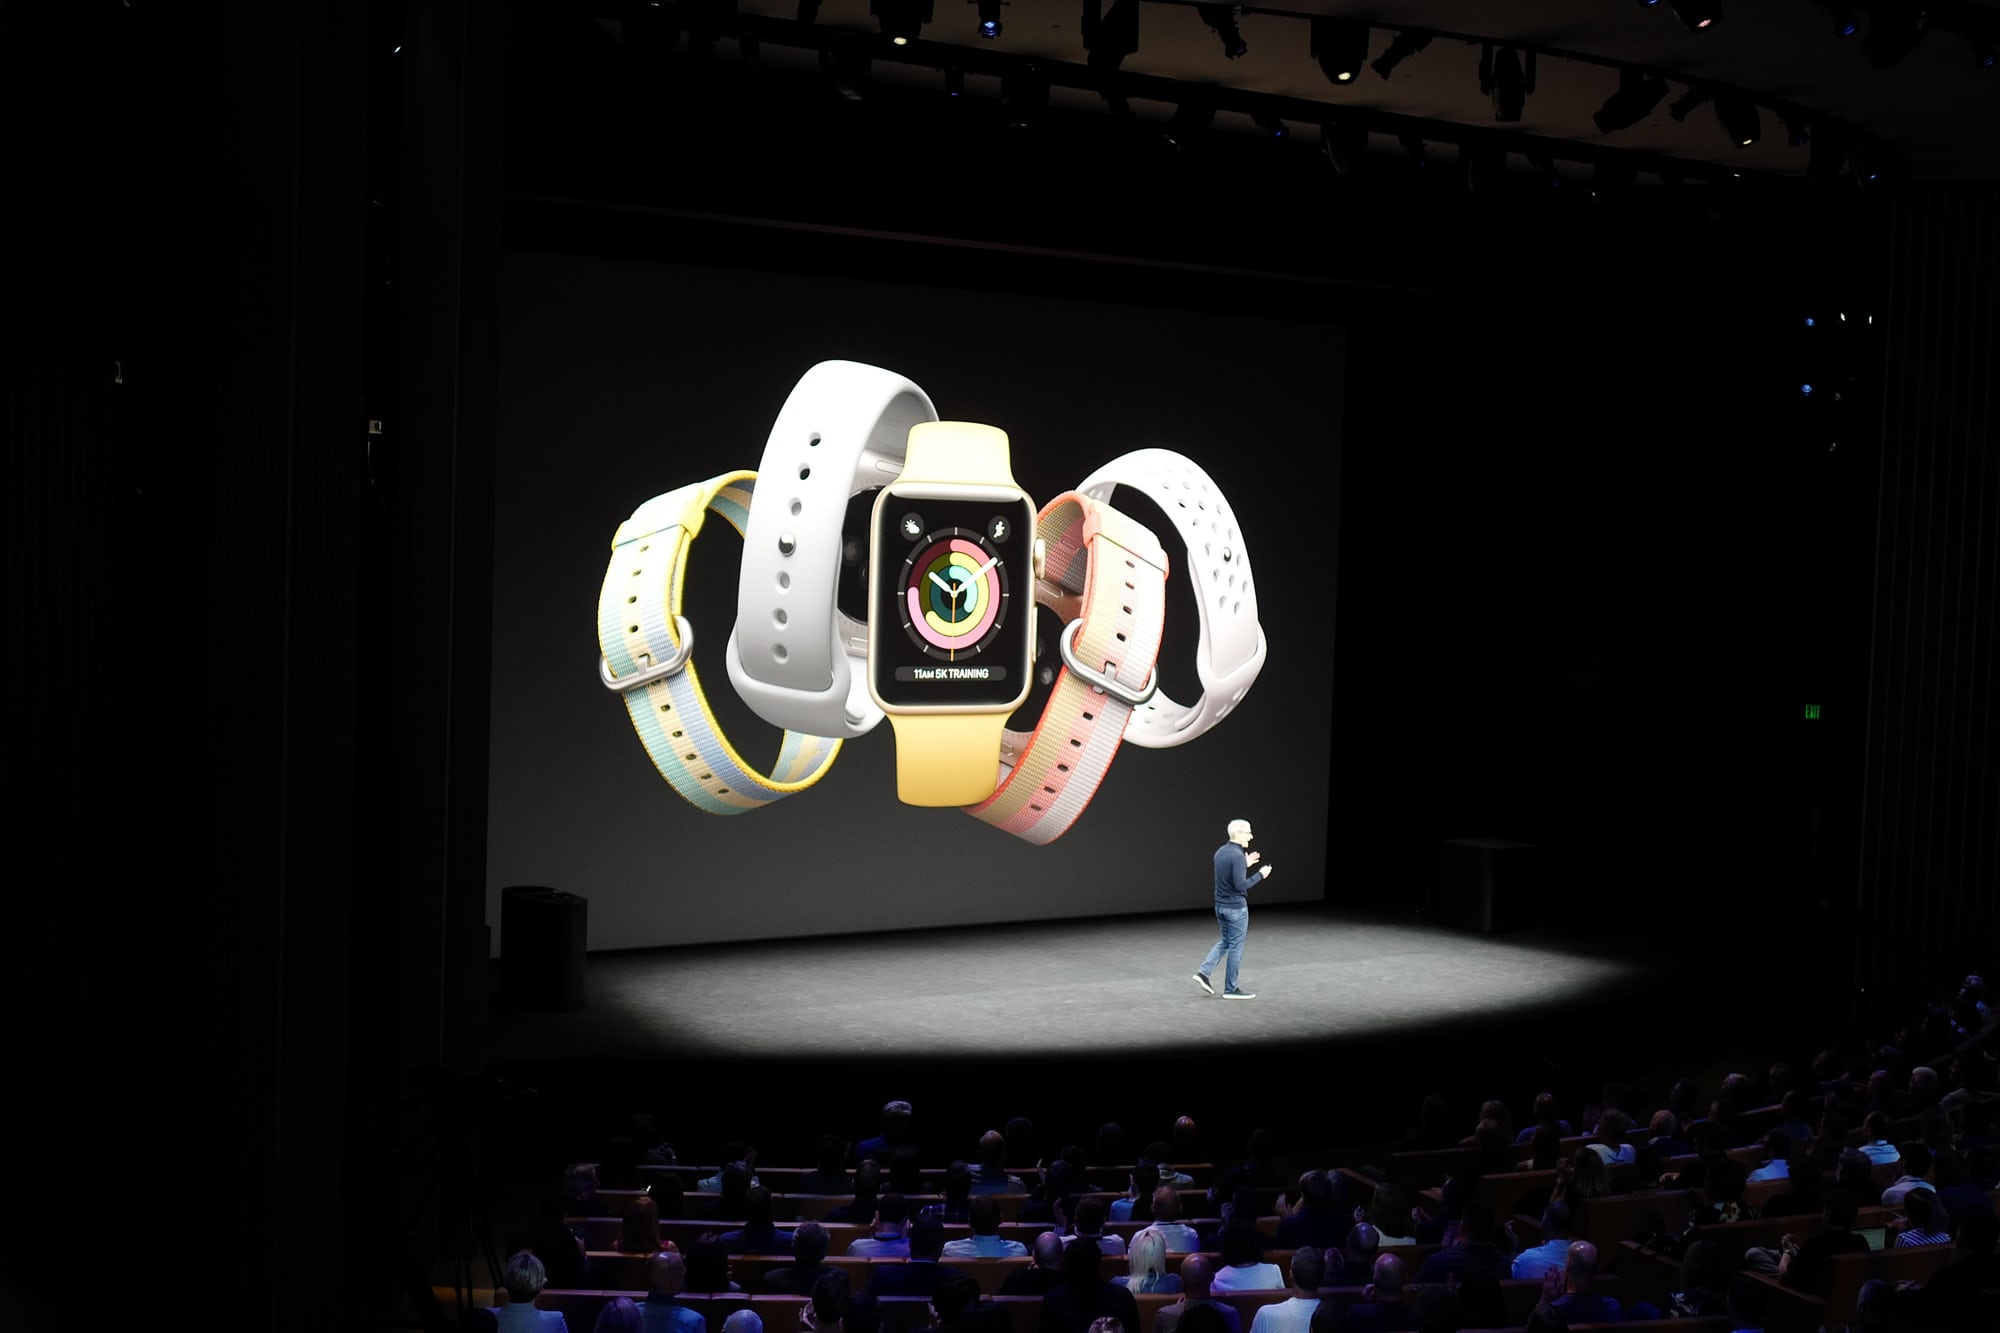 A Week On The Wrist: The Apple Watch Series 3 Edition A Week On The Wrist: The Apple Watch Series 3 Edition L1070205